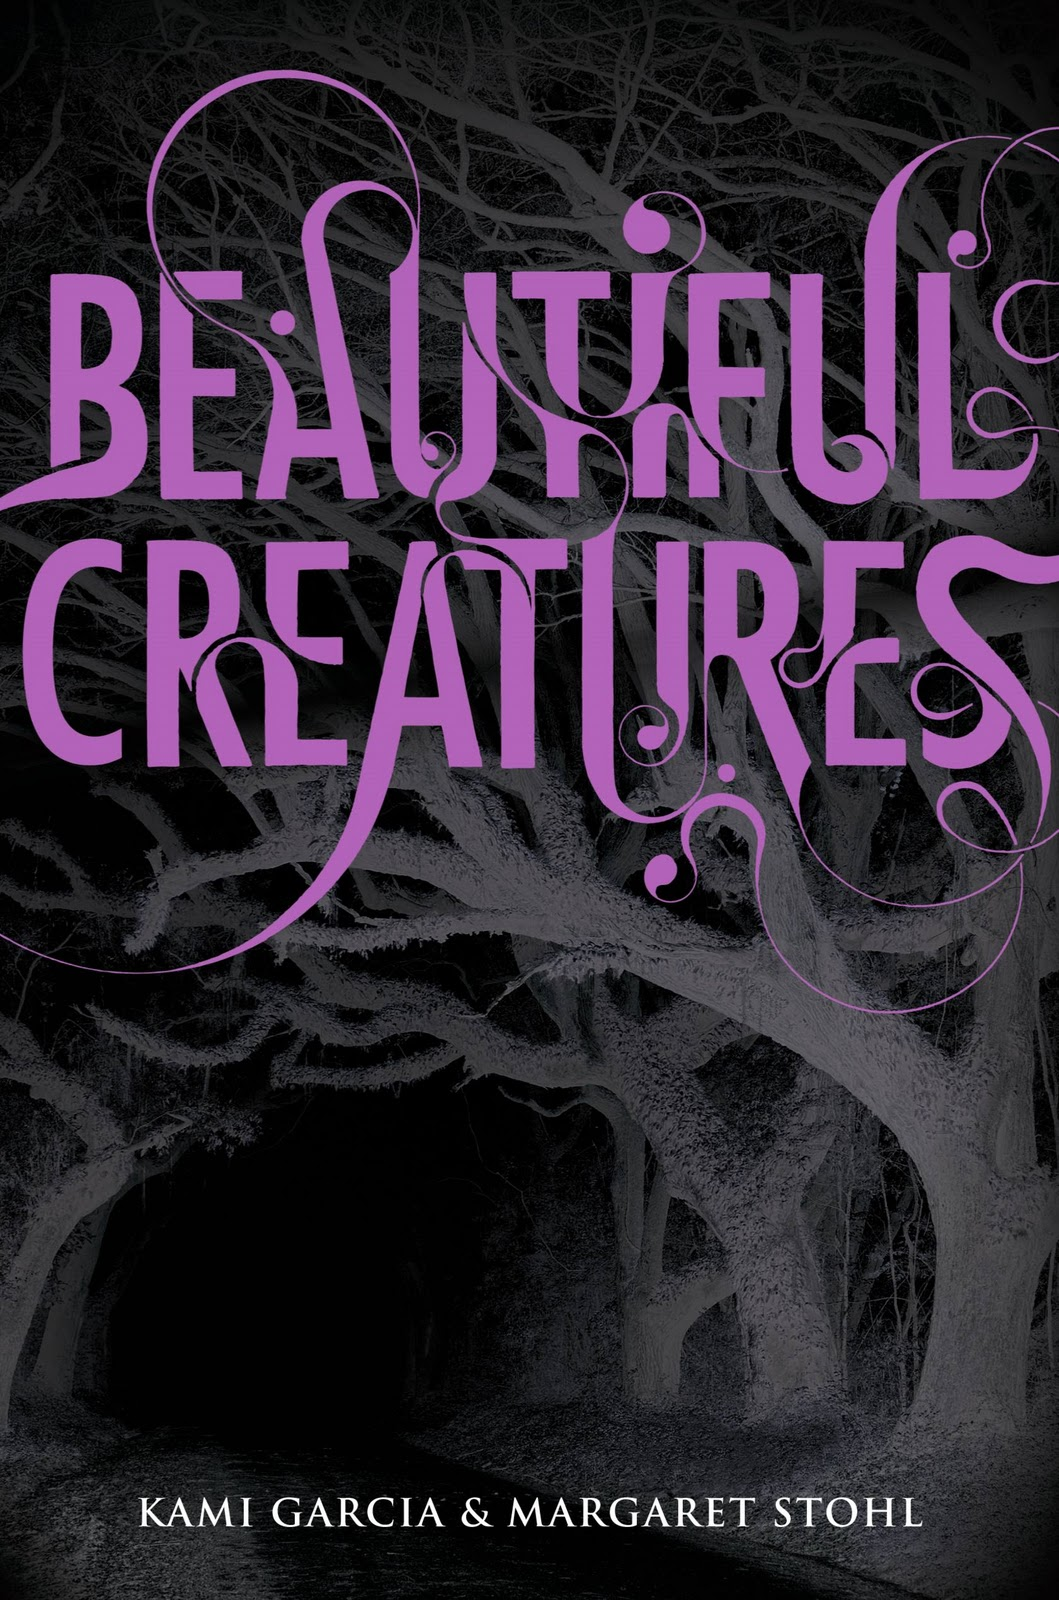 beautiful creatures quotes quotesgram